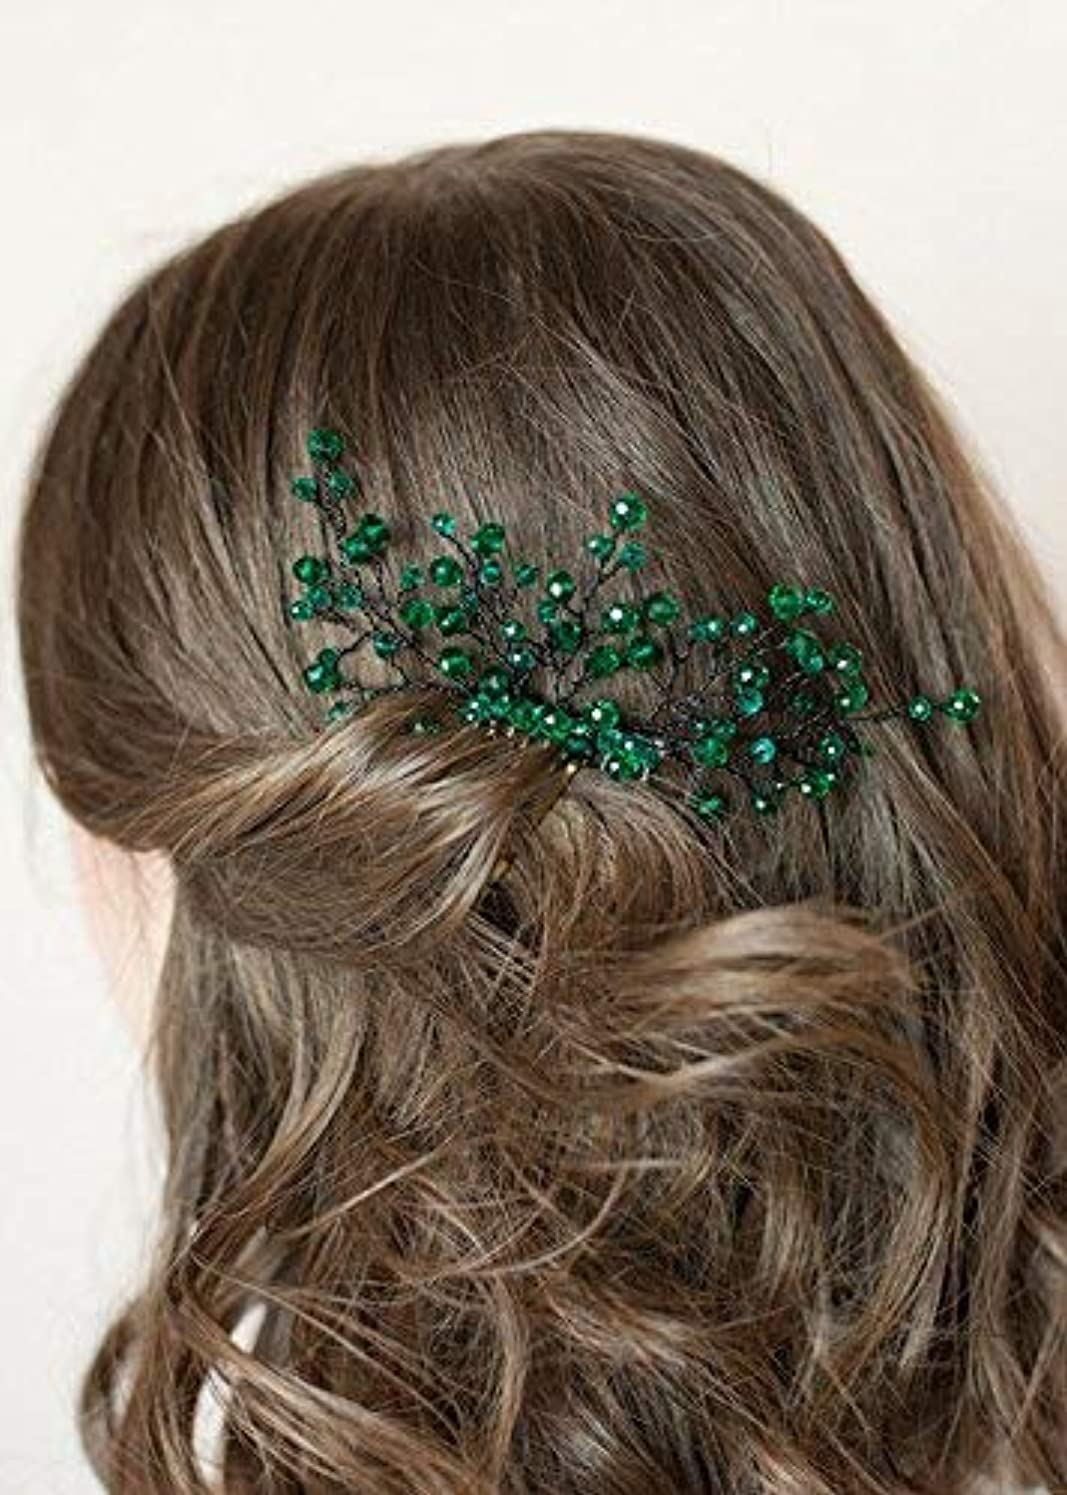 FXmimior Bridal Women Green Vintage Wedding Party Crystal Rhinestone Vintage Hair Comb Hair Accessories [並行輸入品]